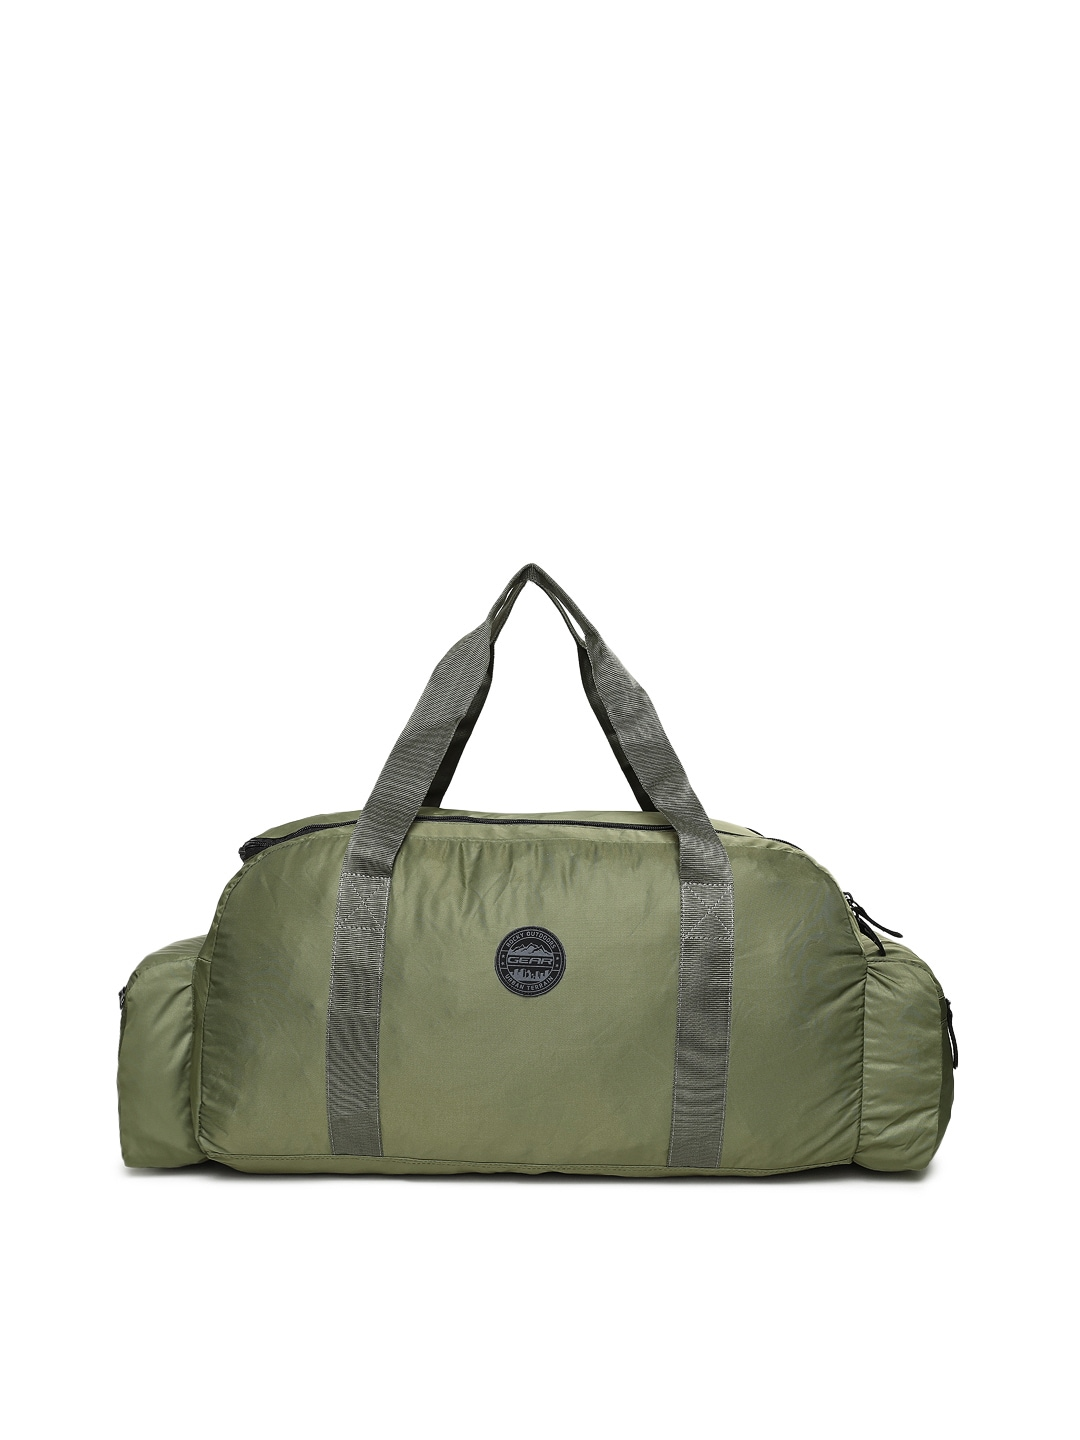 4b3a67438 Olive Bags Travel Accessory - Buy Olive Bags Travel Accessory online in  India